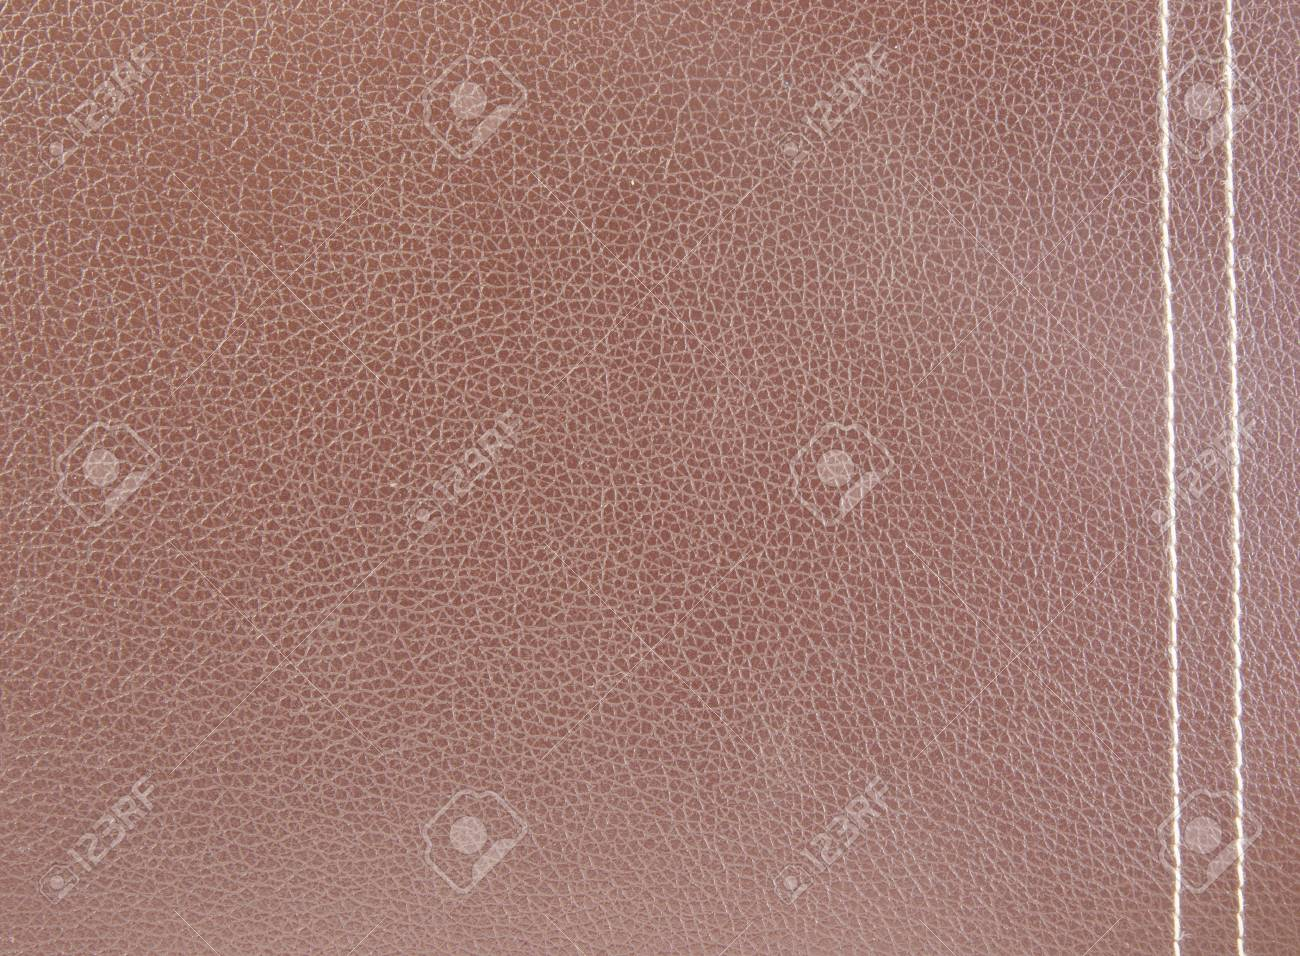 Brown leather with white line use as background Stock Photo - 17473516